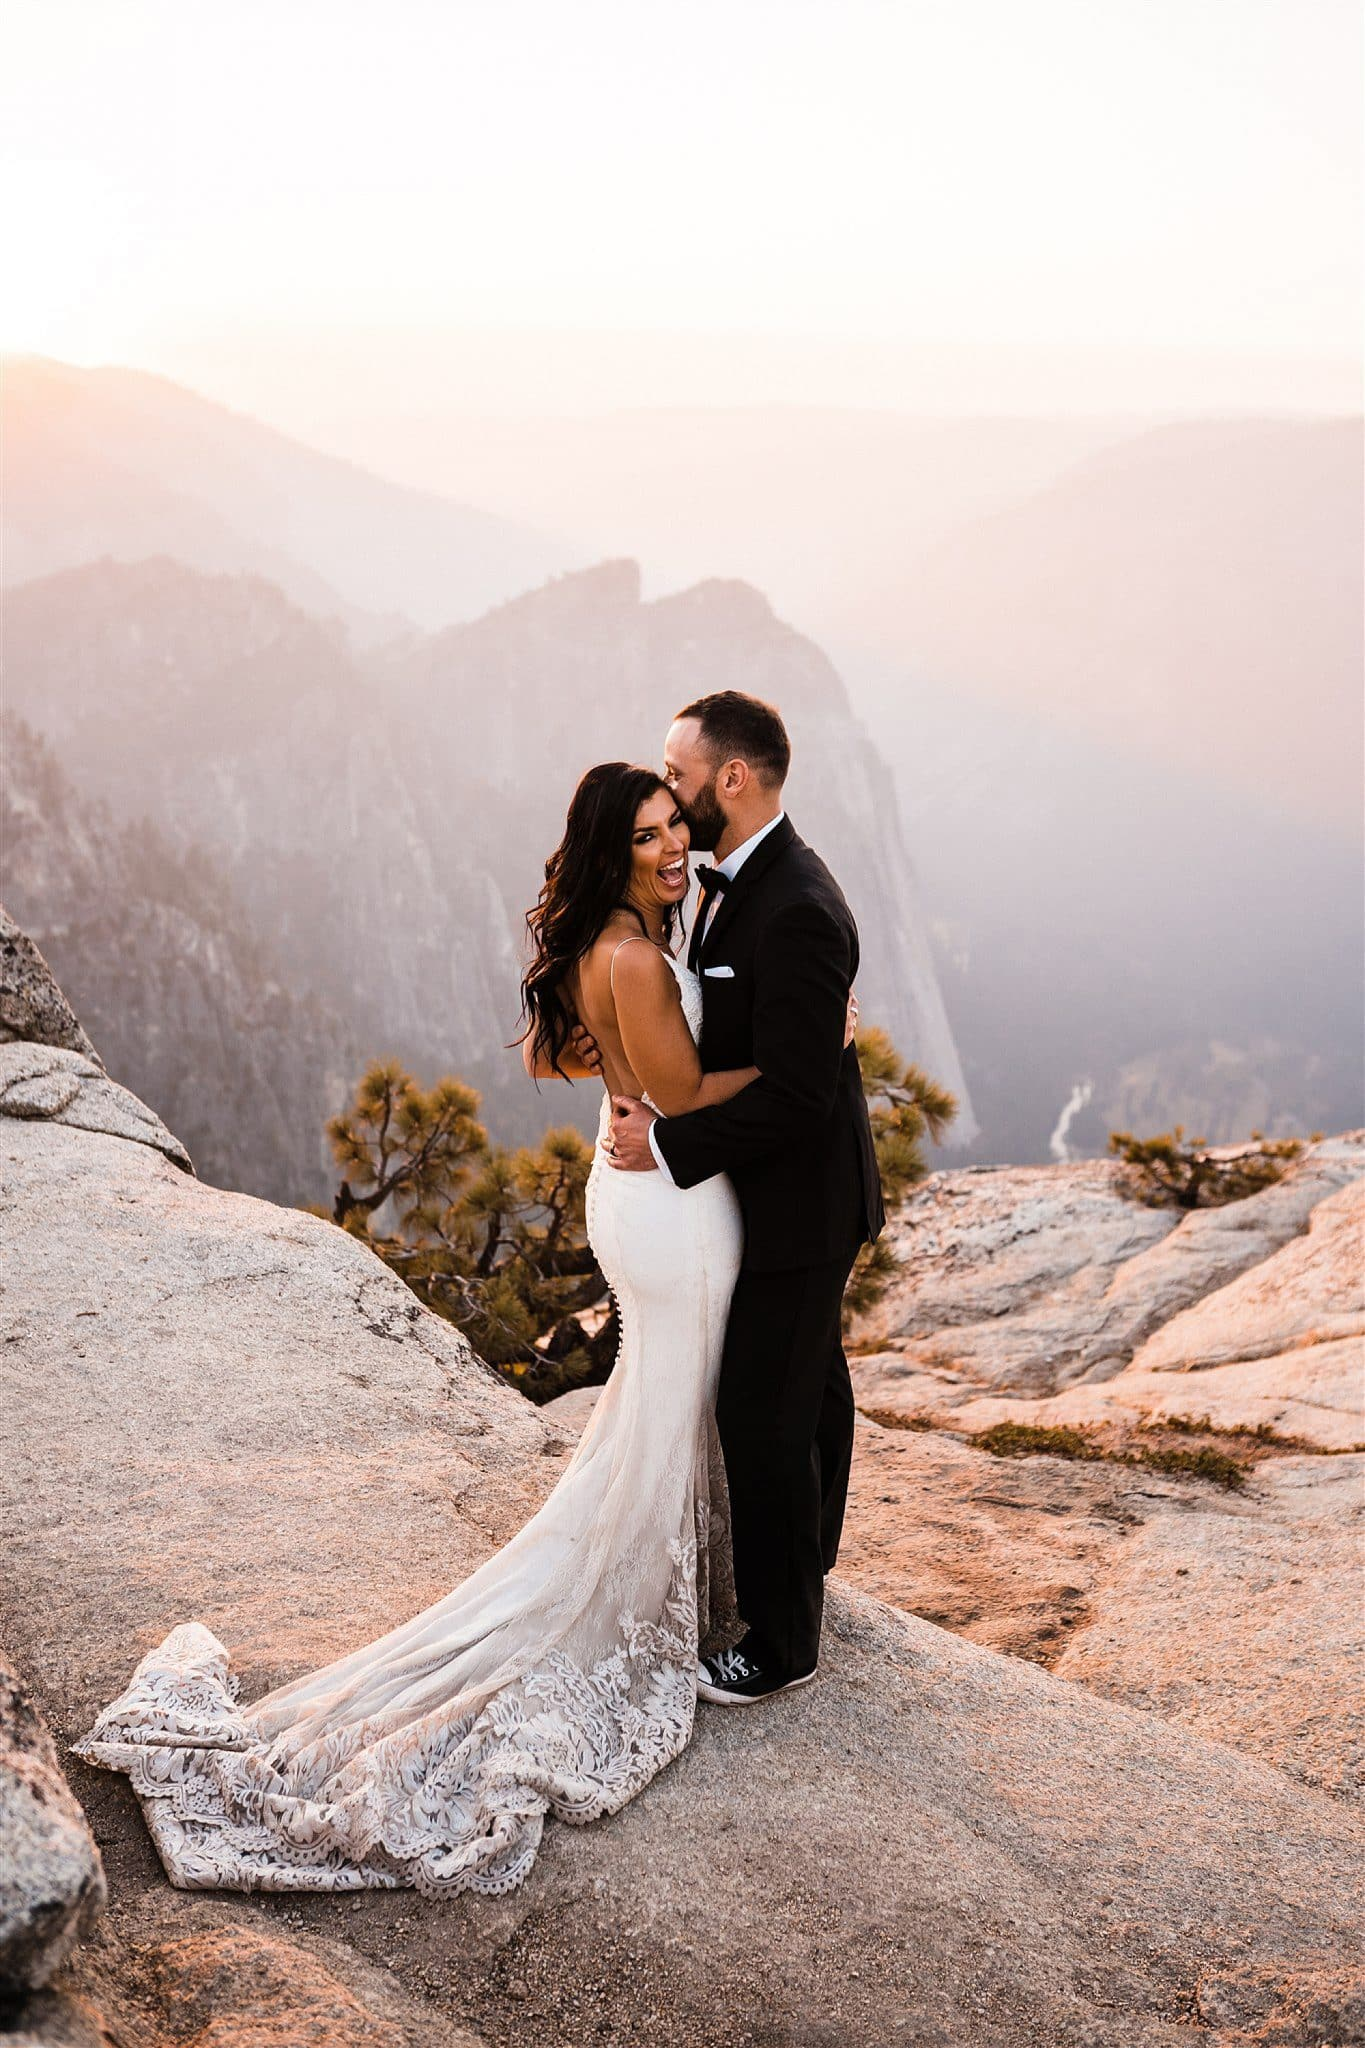 Taft_Point_Elopement_The_Foxes_Photography_0016.jpg